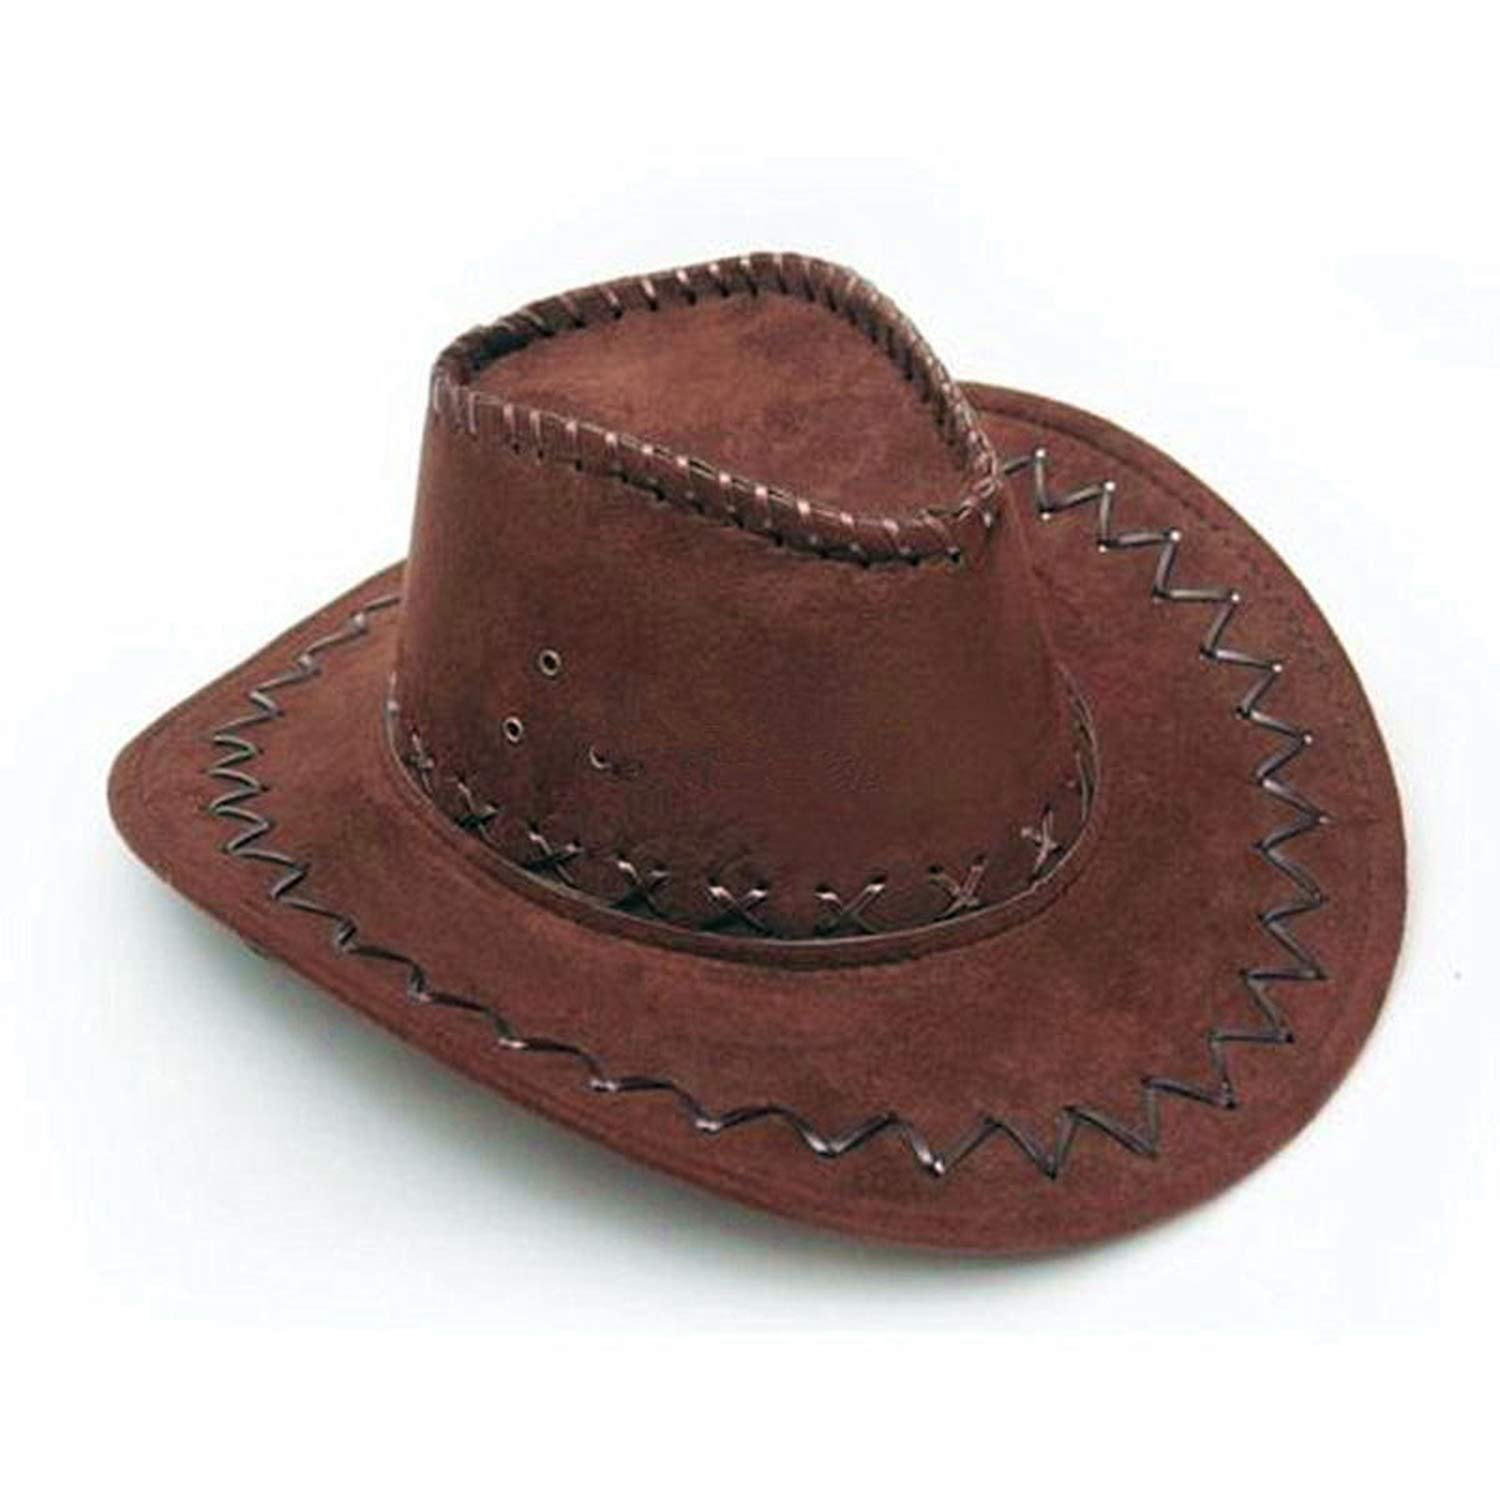 Get Quotations · Hufong Fashion Men Women Cowboy Cap Fancy Dress Unisex  Wide Brim Hats Black Coffee   6752fe4886a7